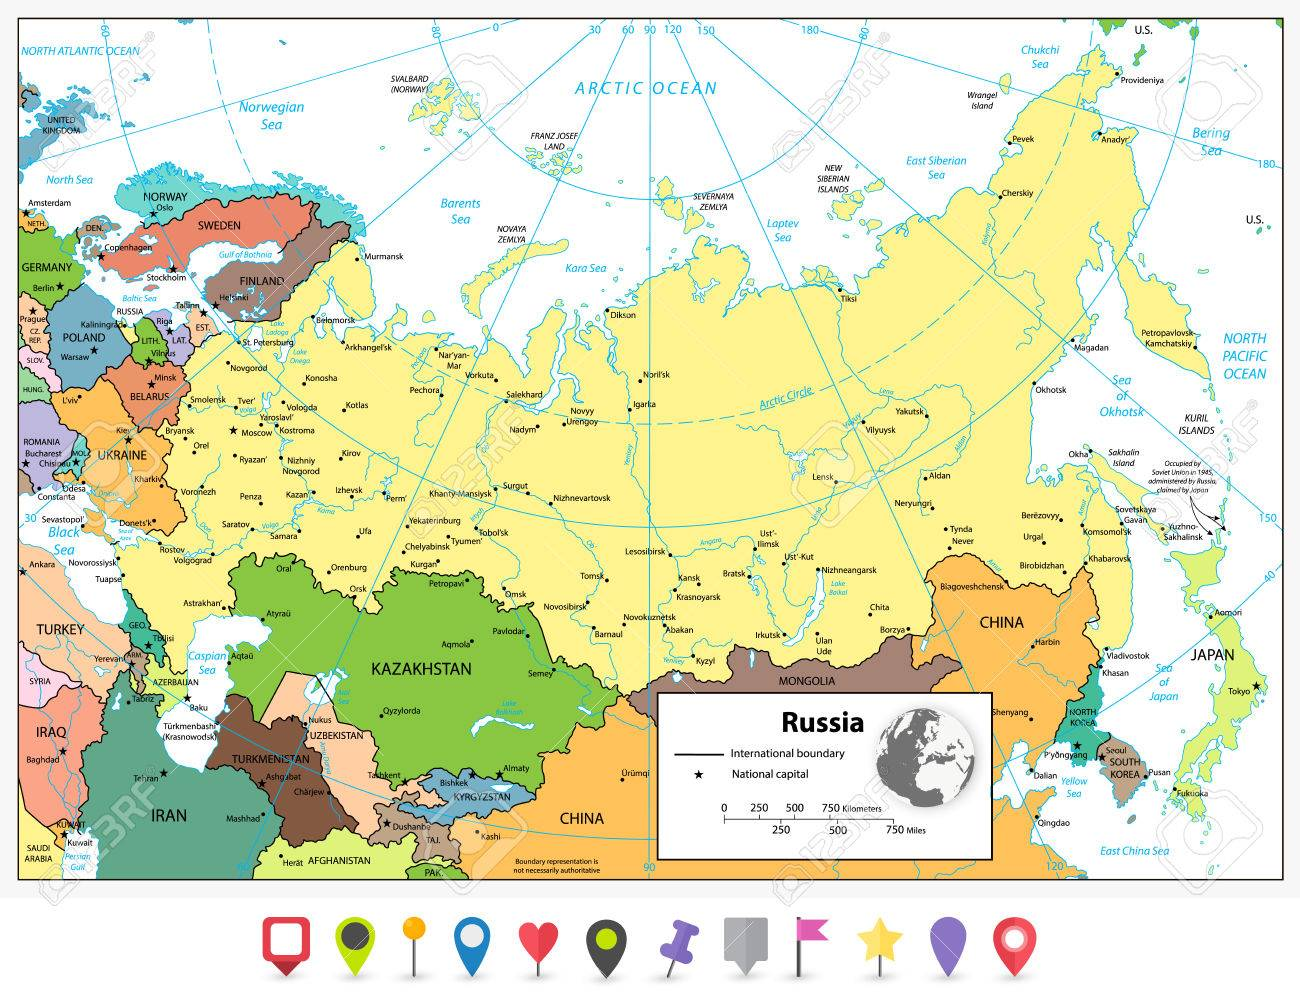 Russian federation detailed political map and flat map pointers russian federation detailed political map and flat map pointers with separated layers stock vector gumiabroncs Gallery